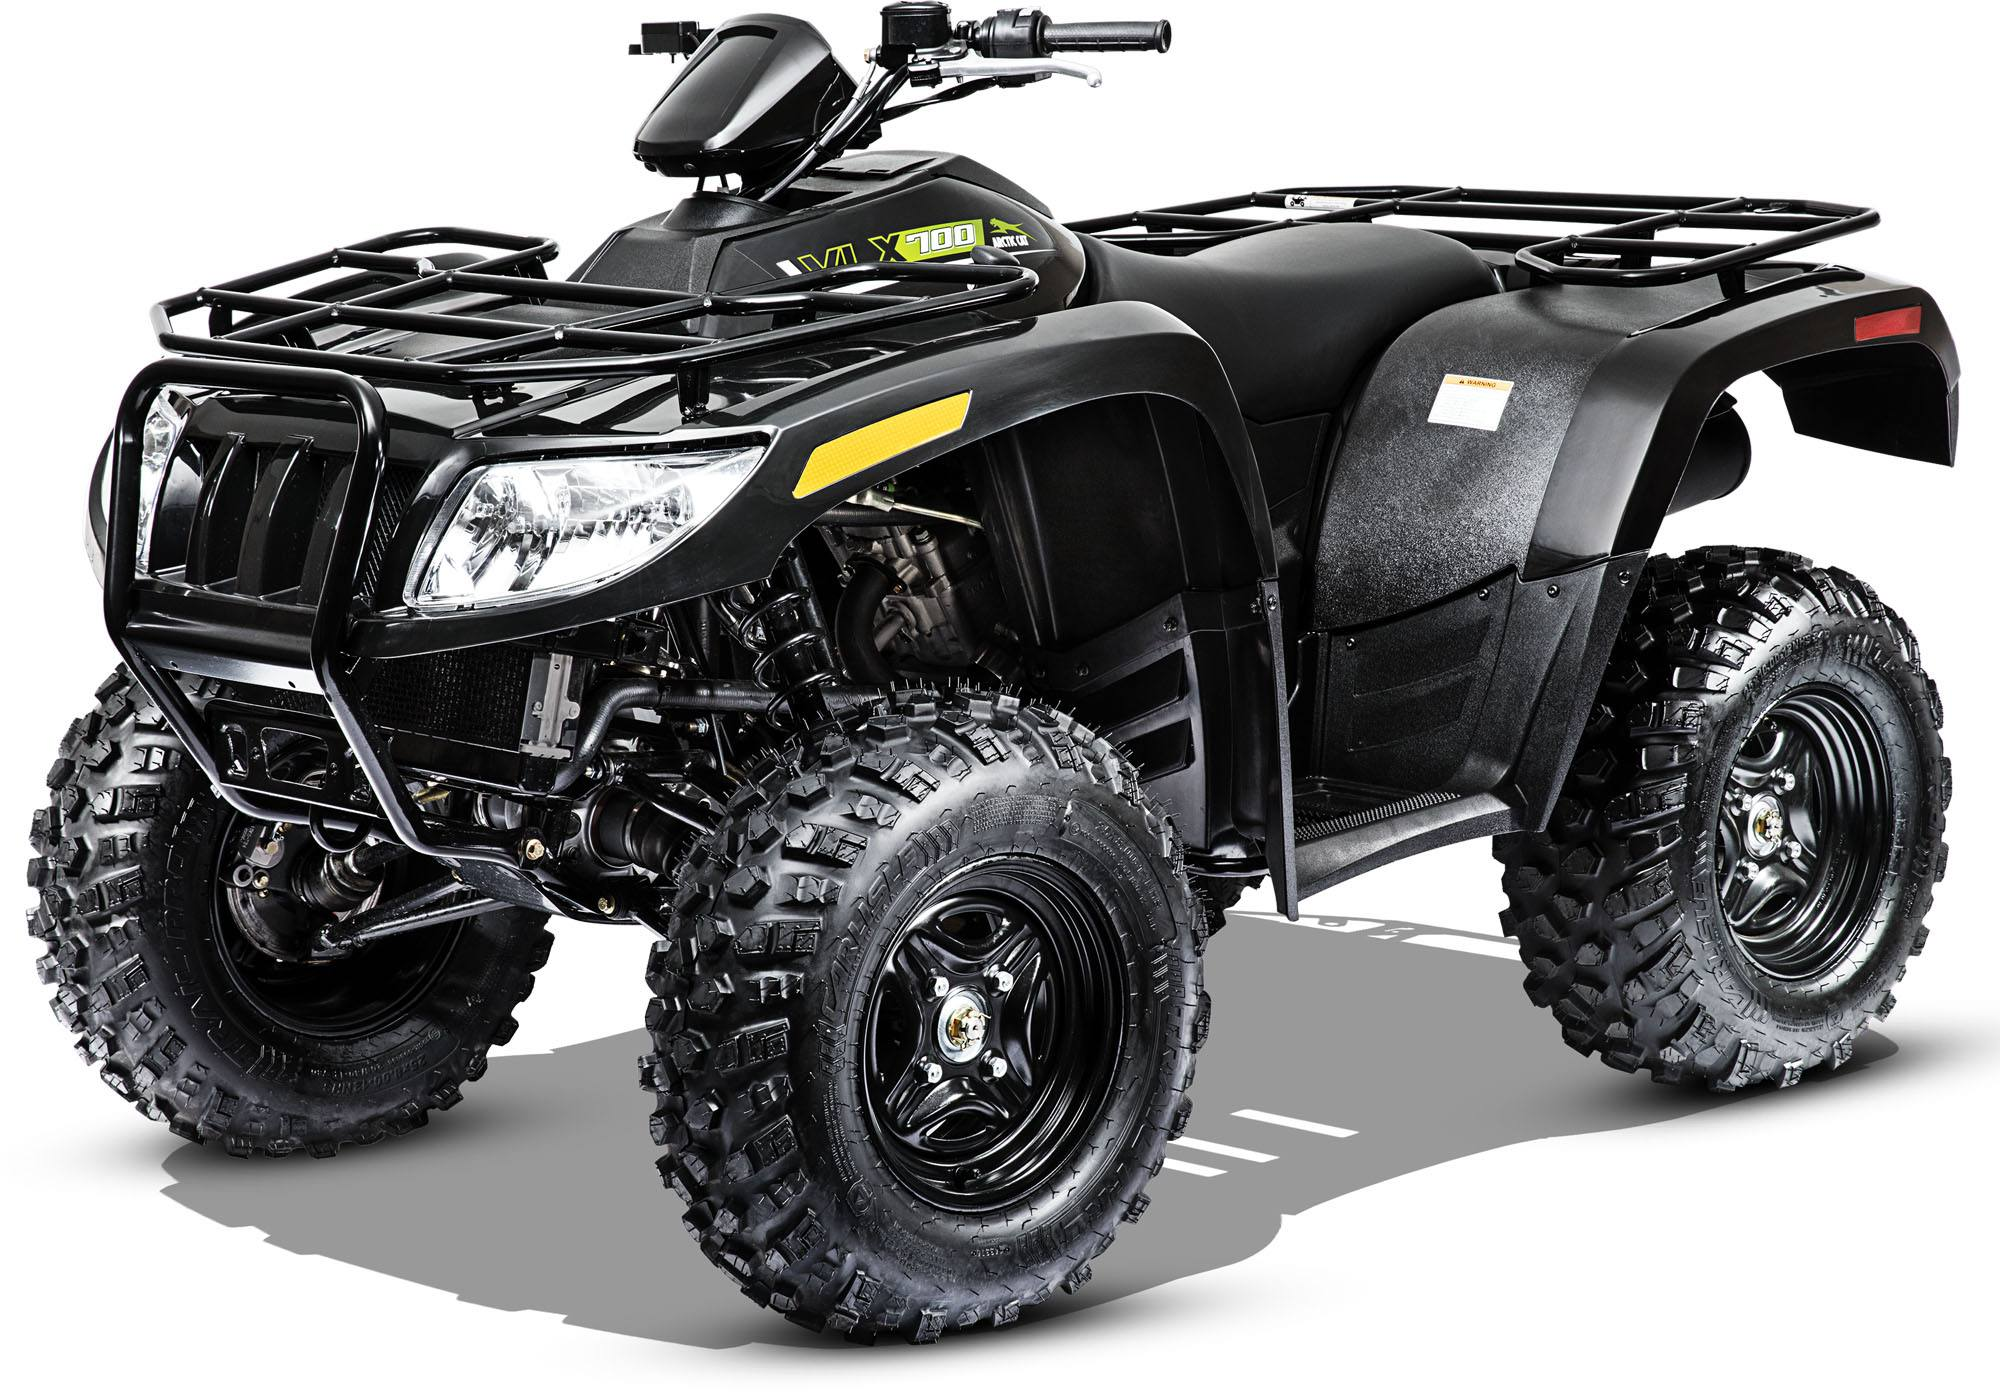 2017 Arctic Cat VLX 700 in Pendleton, New York